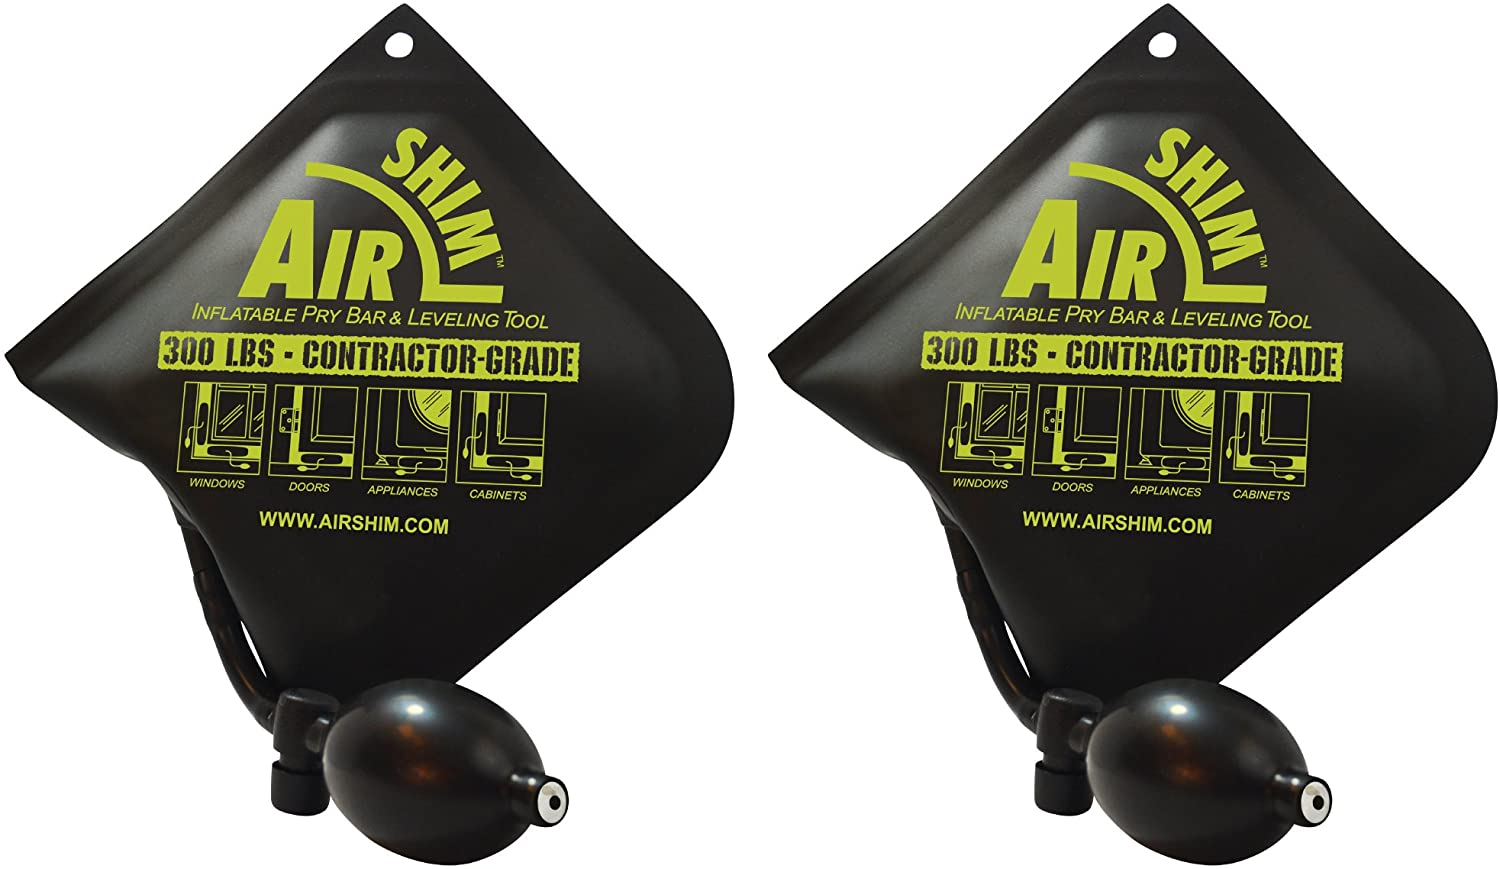 Calculated Industries 1192 Air Shim Level Bar At the price Inflatable online shopping and Pry